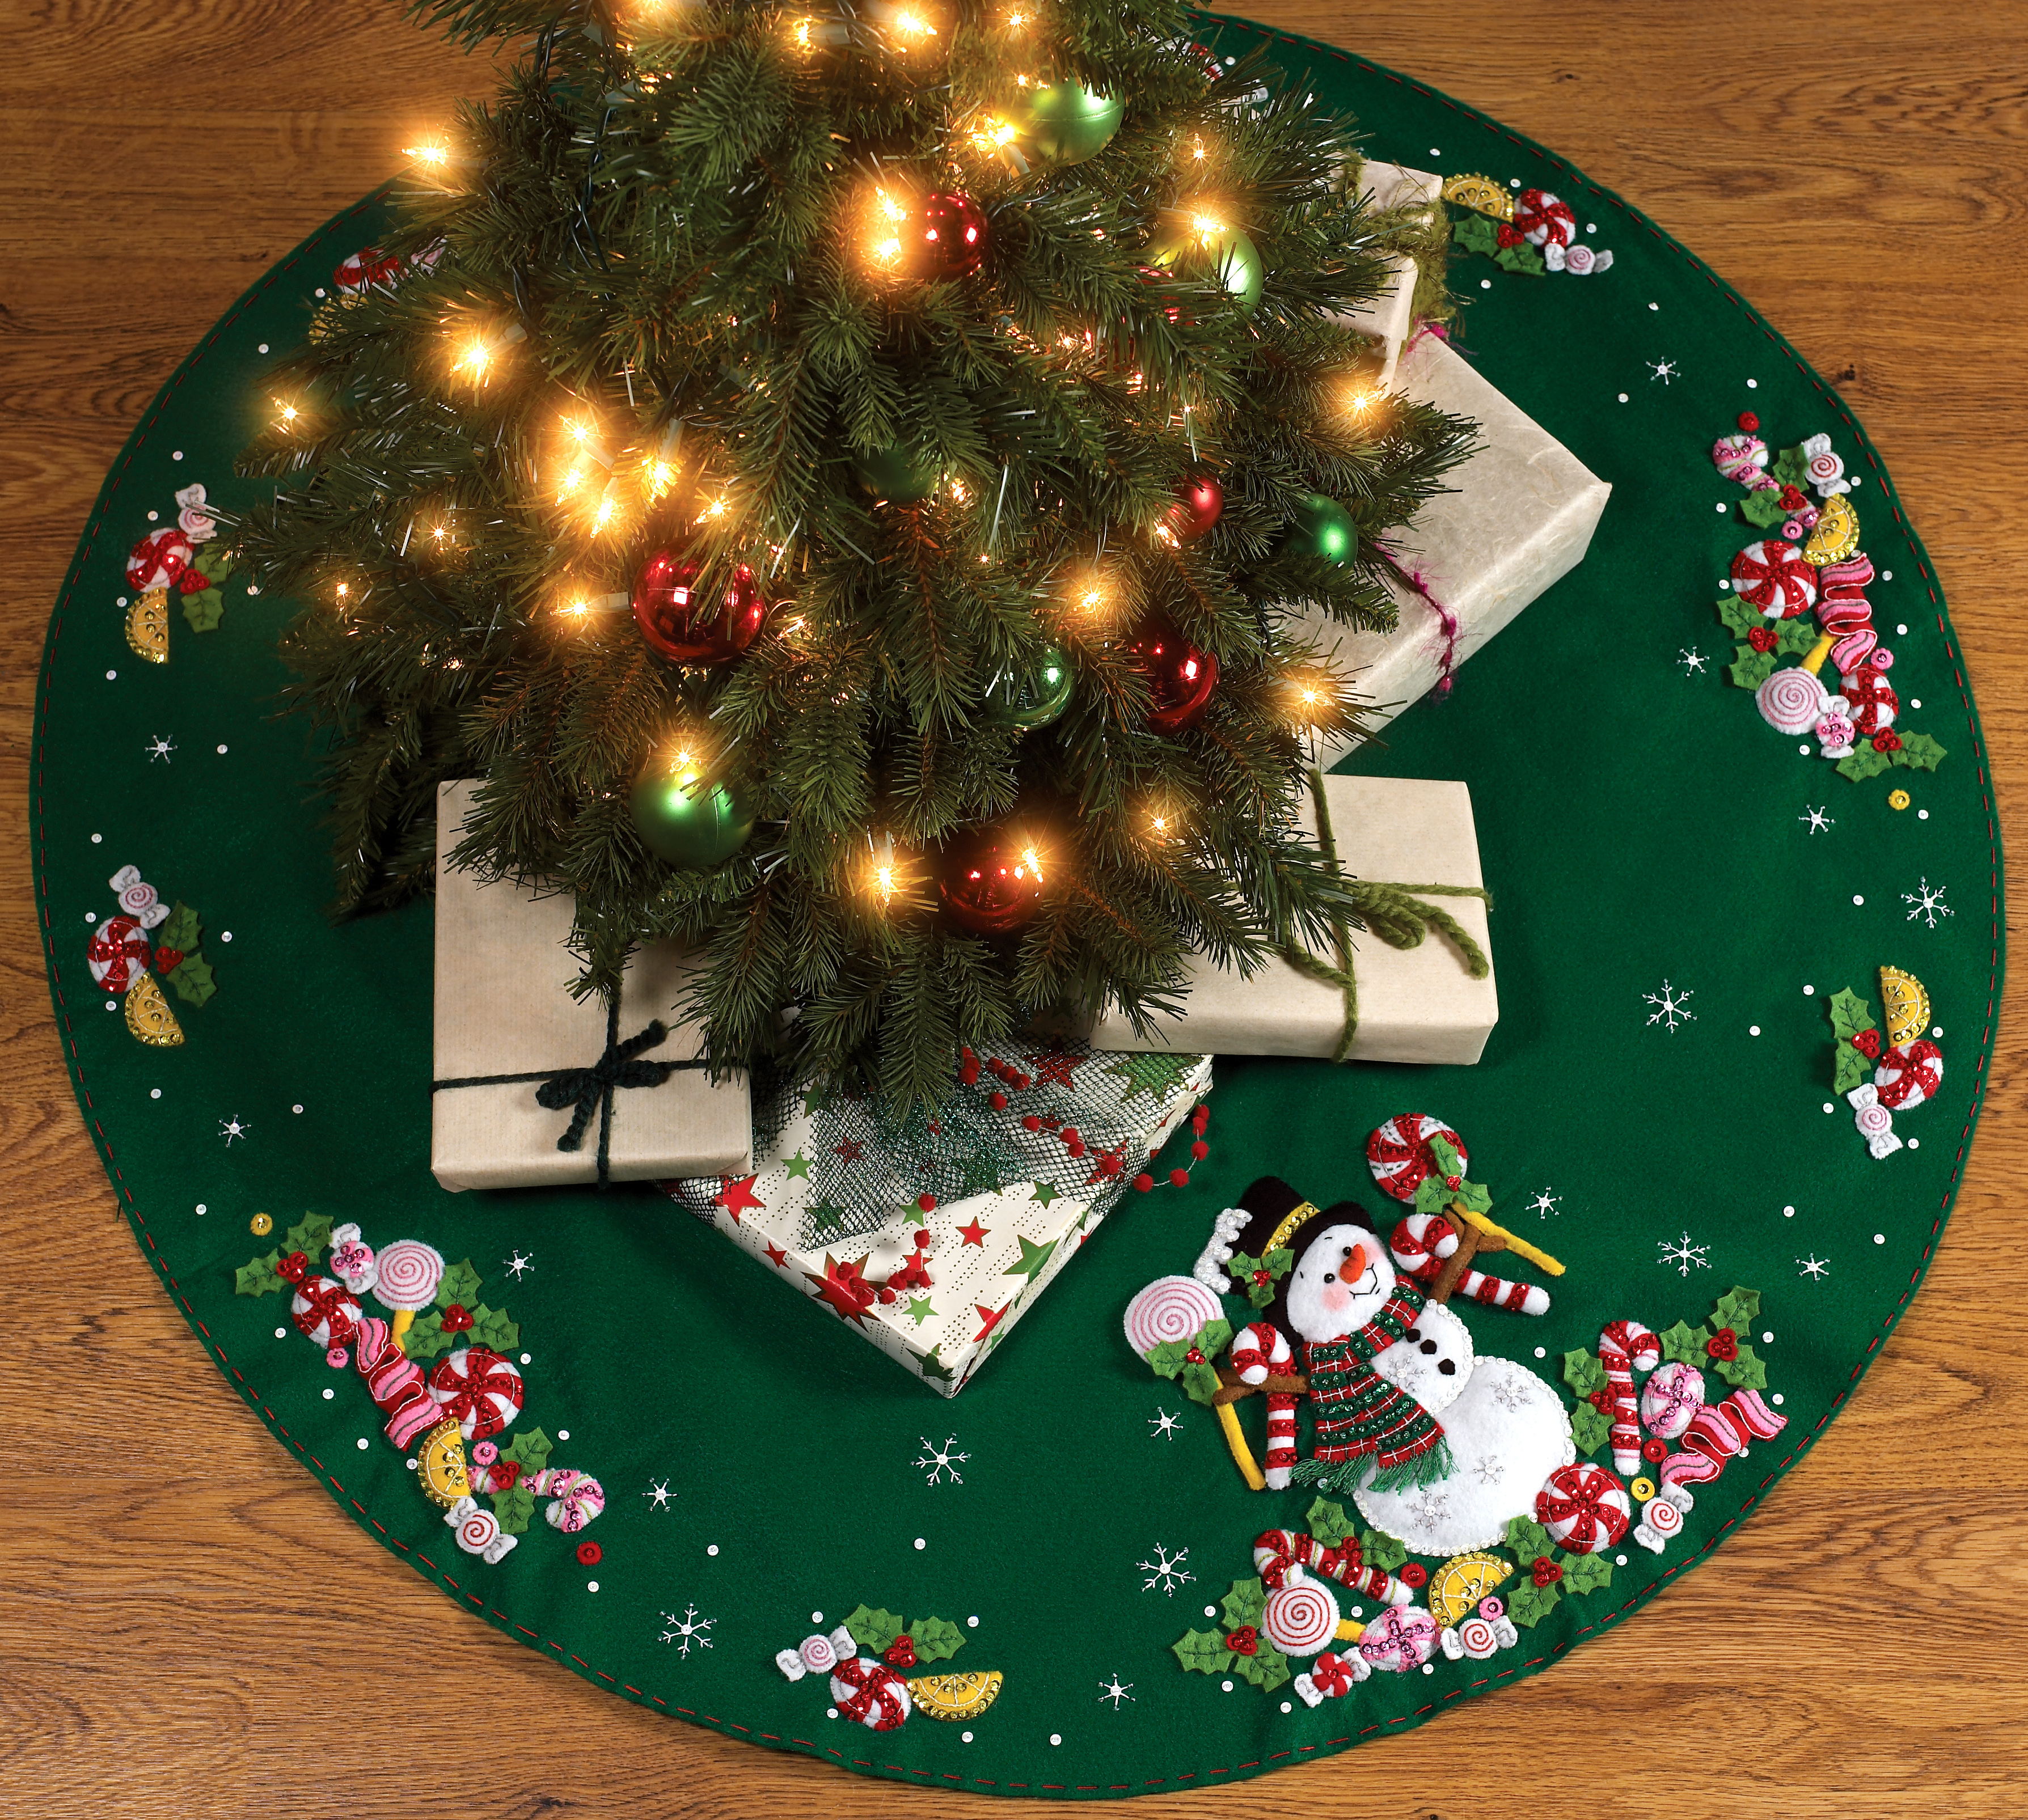 86307 Bucilla Candy Snowman Tree Skirt Kit